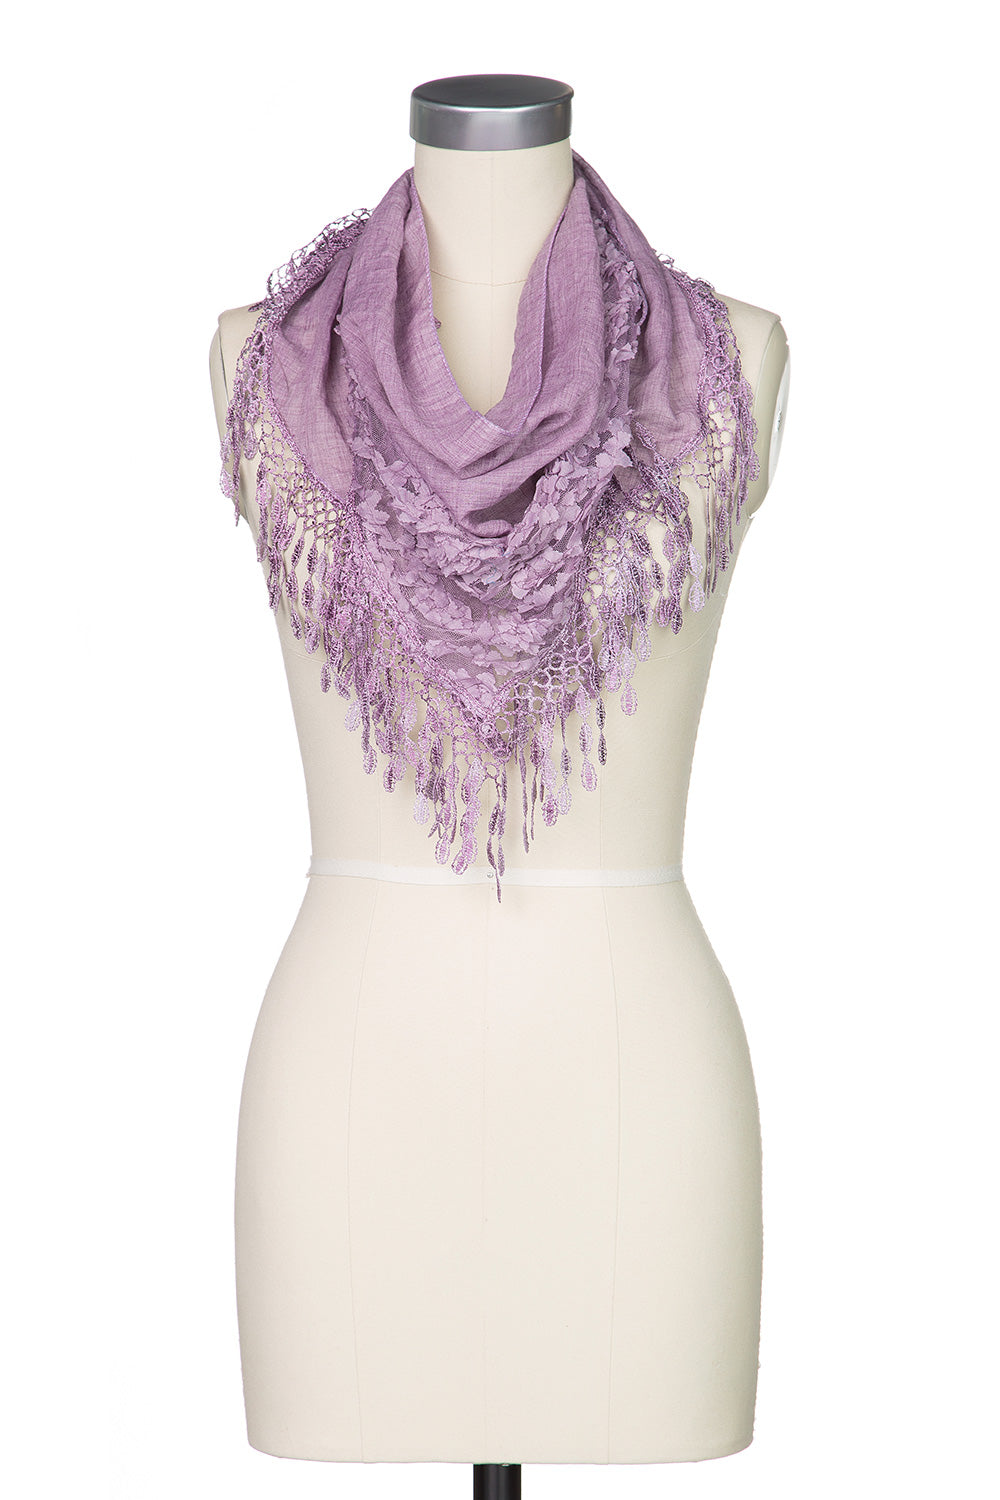 Type 2 3D Lace Scarf